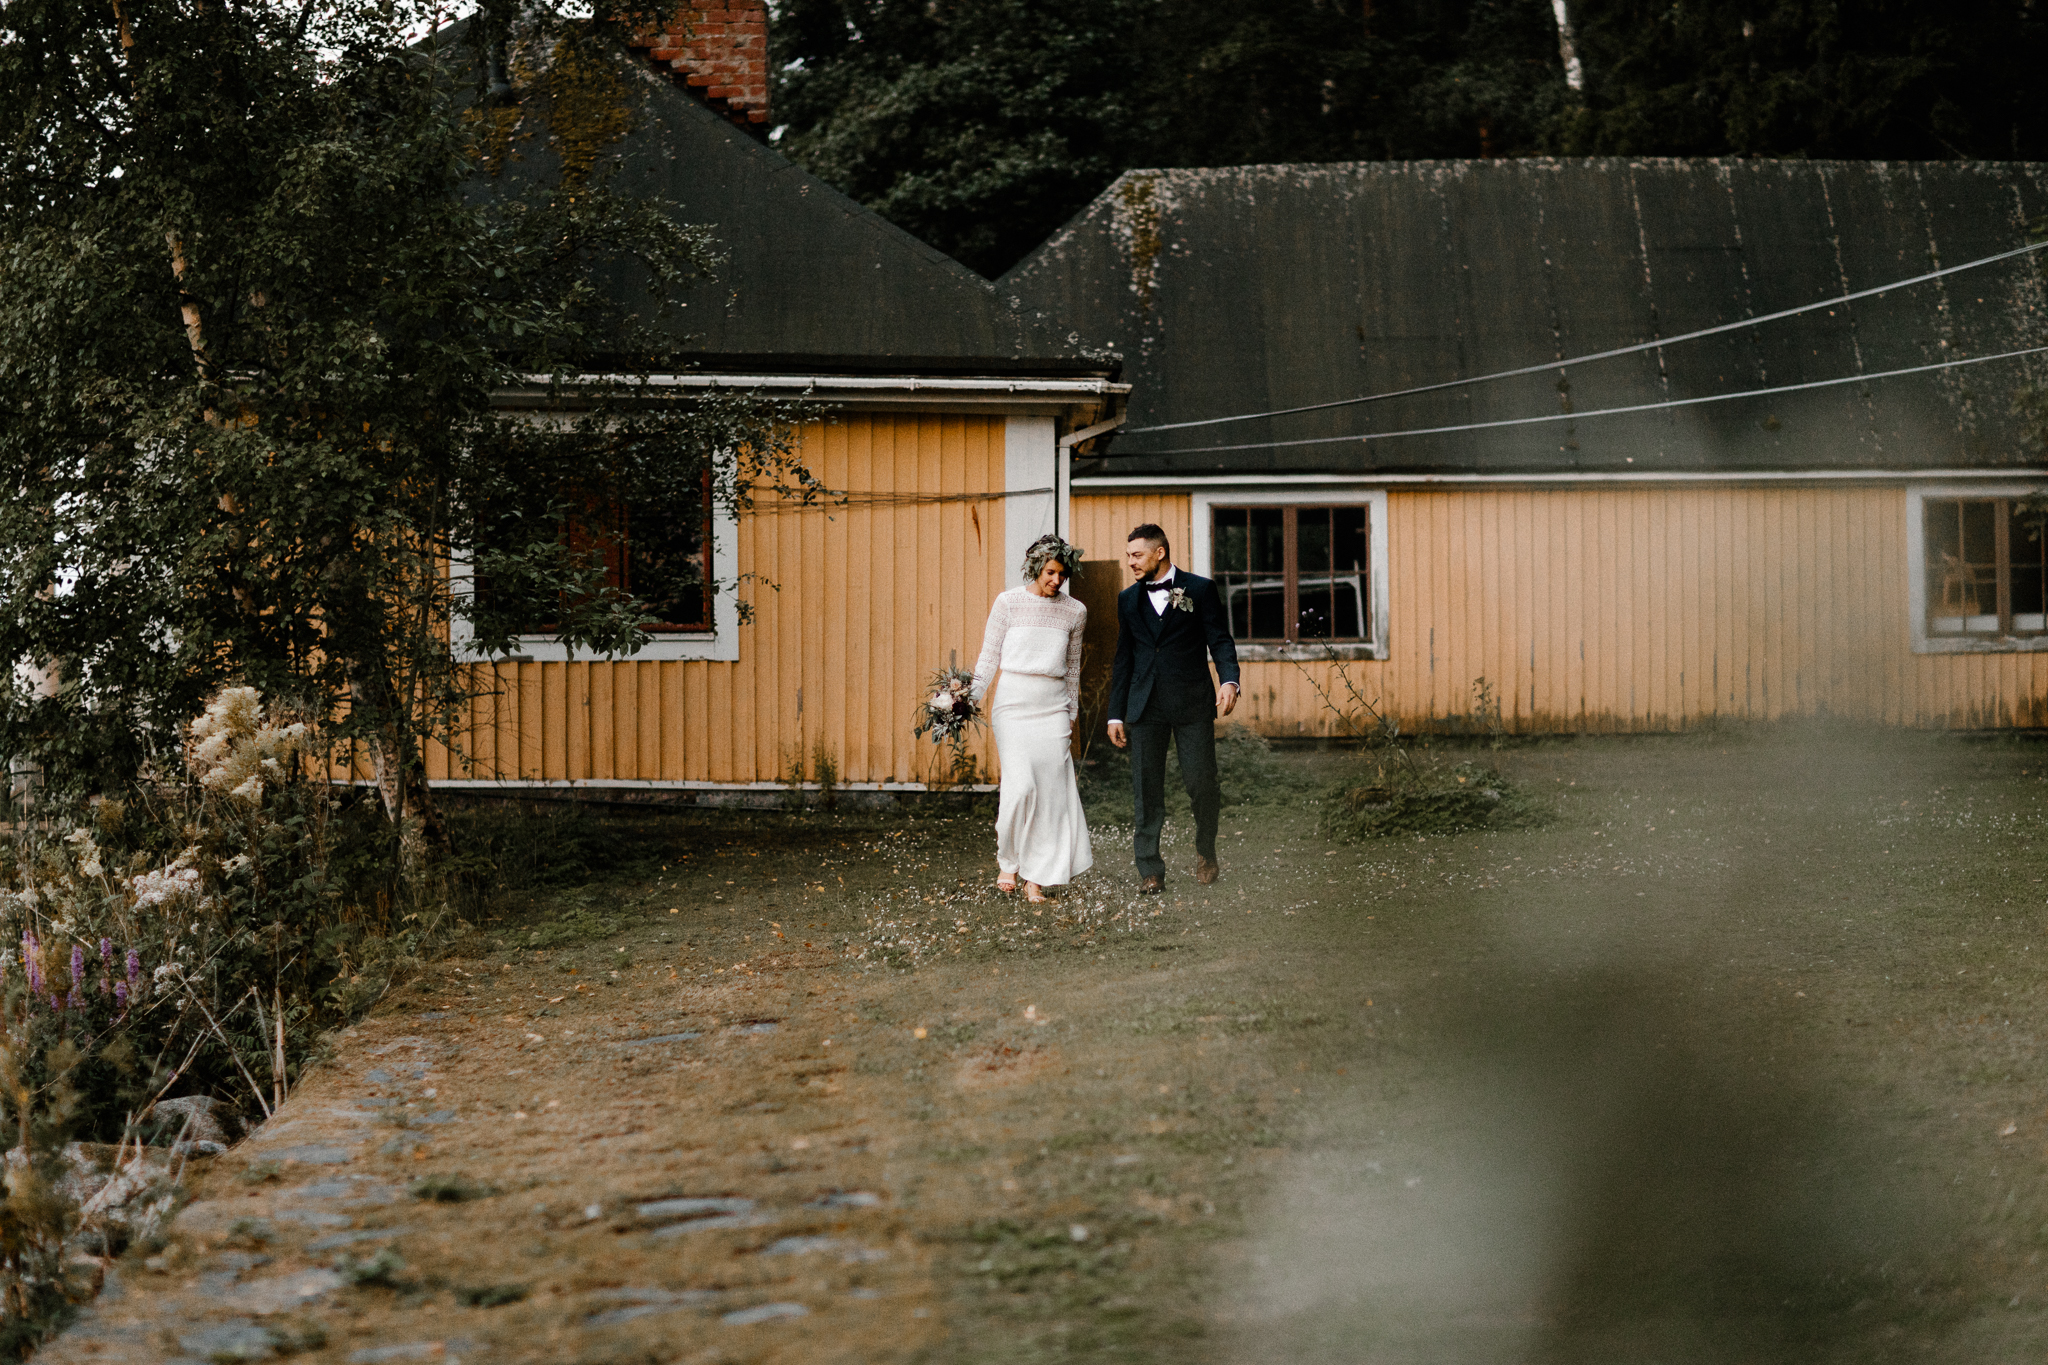 Julien + Johanna | Villa Ivan Falin | by Patrick Karkkolainen Wedding Photography-289.jpg